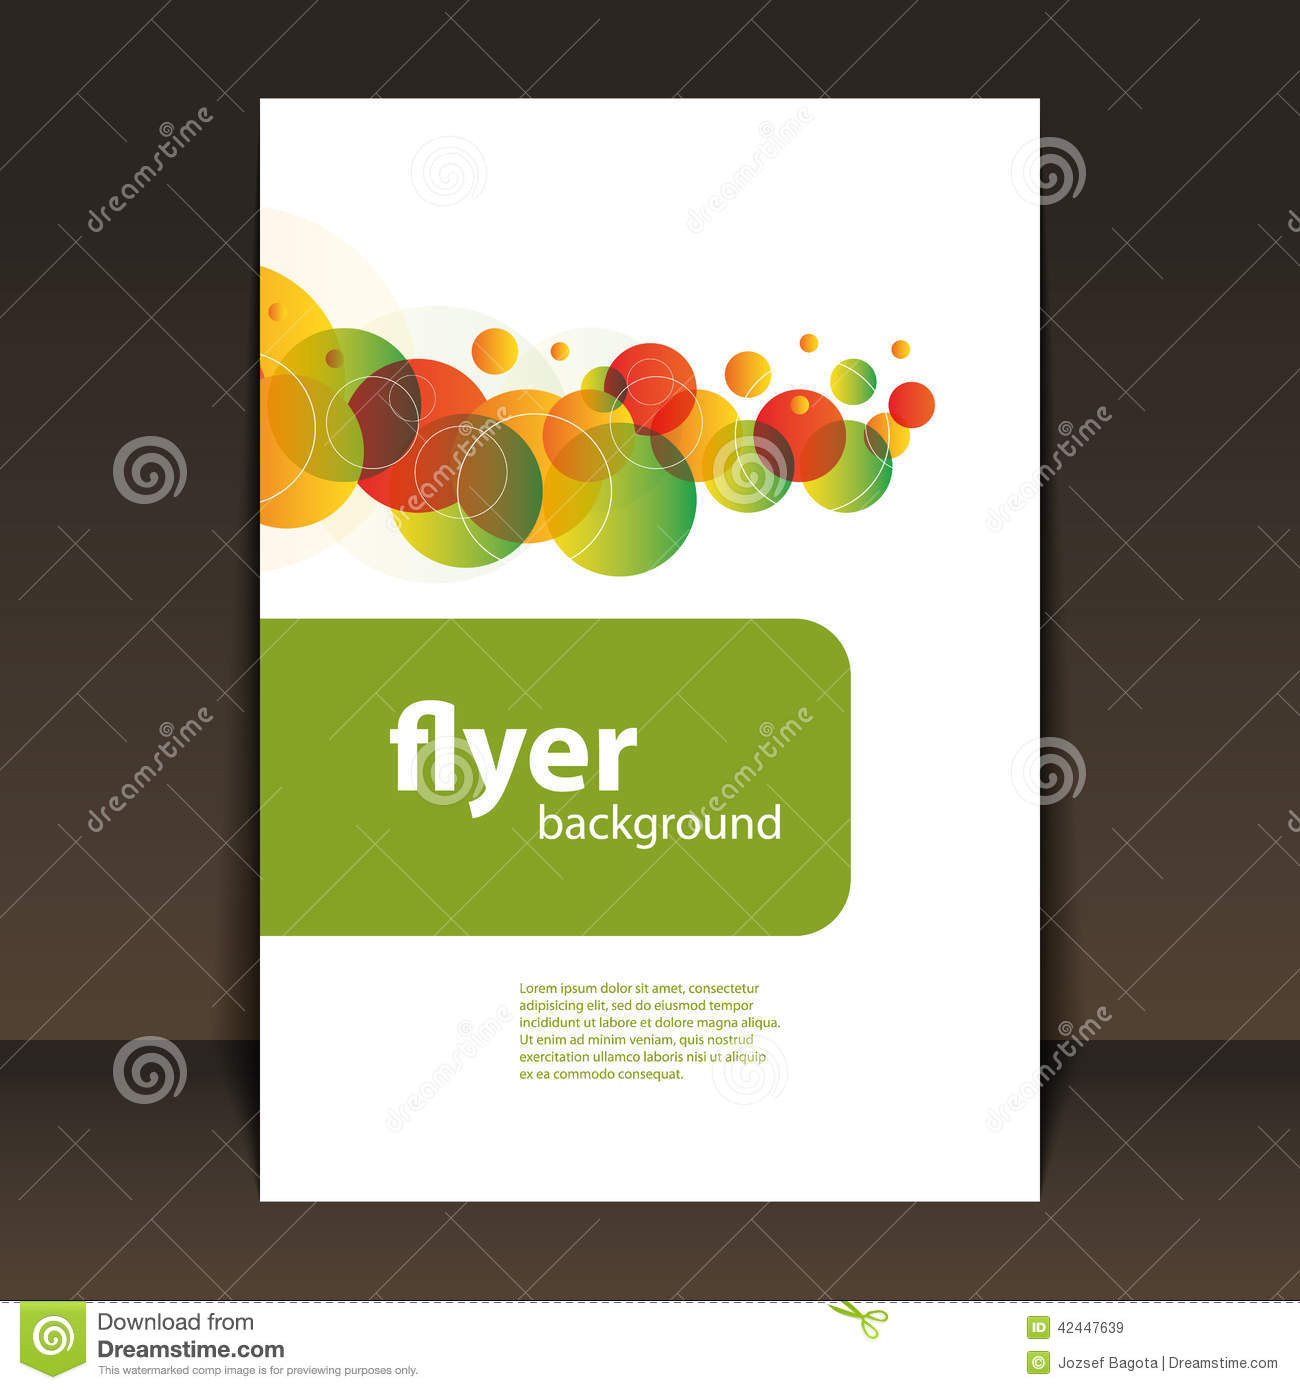 book cover page design templates free download - flyer or cover design circles pattern background stock